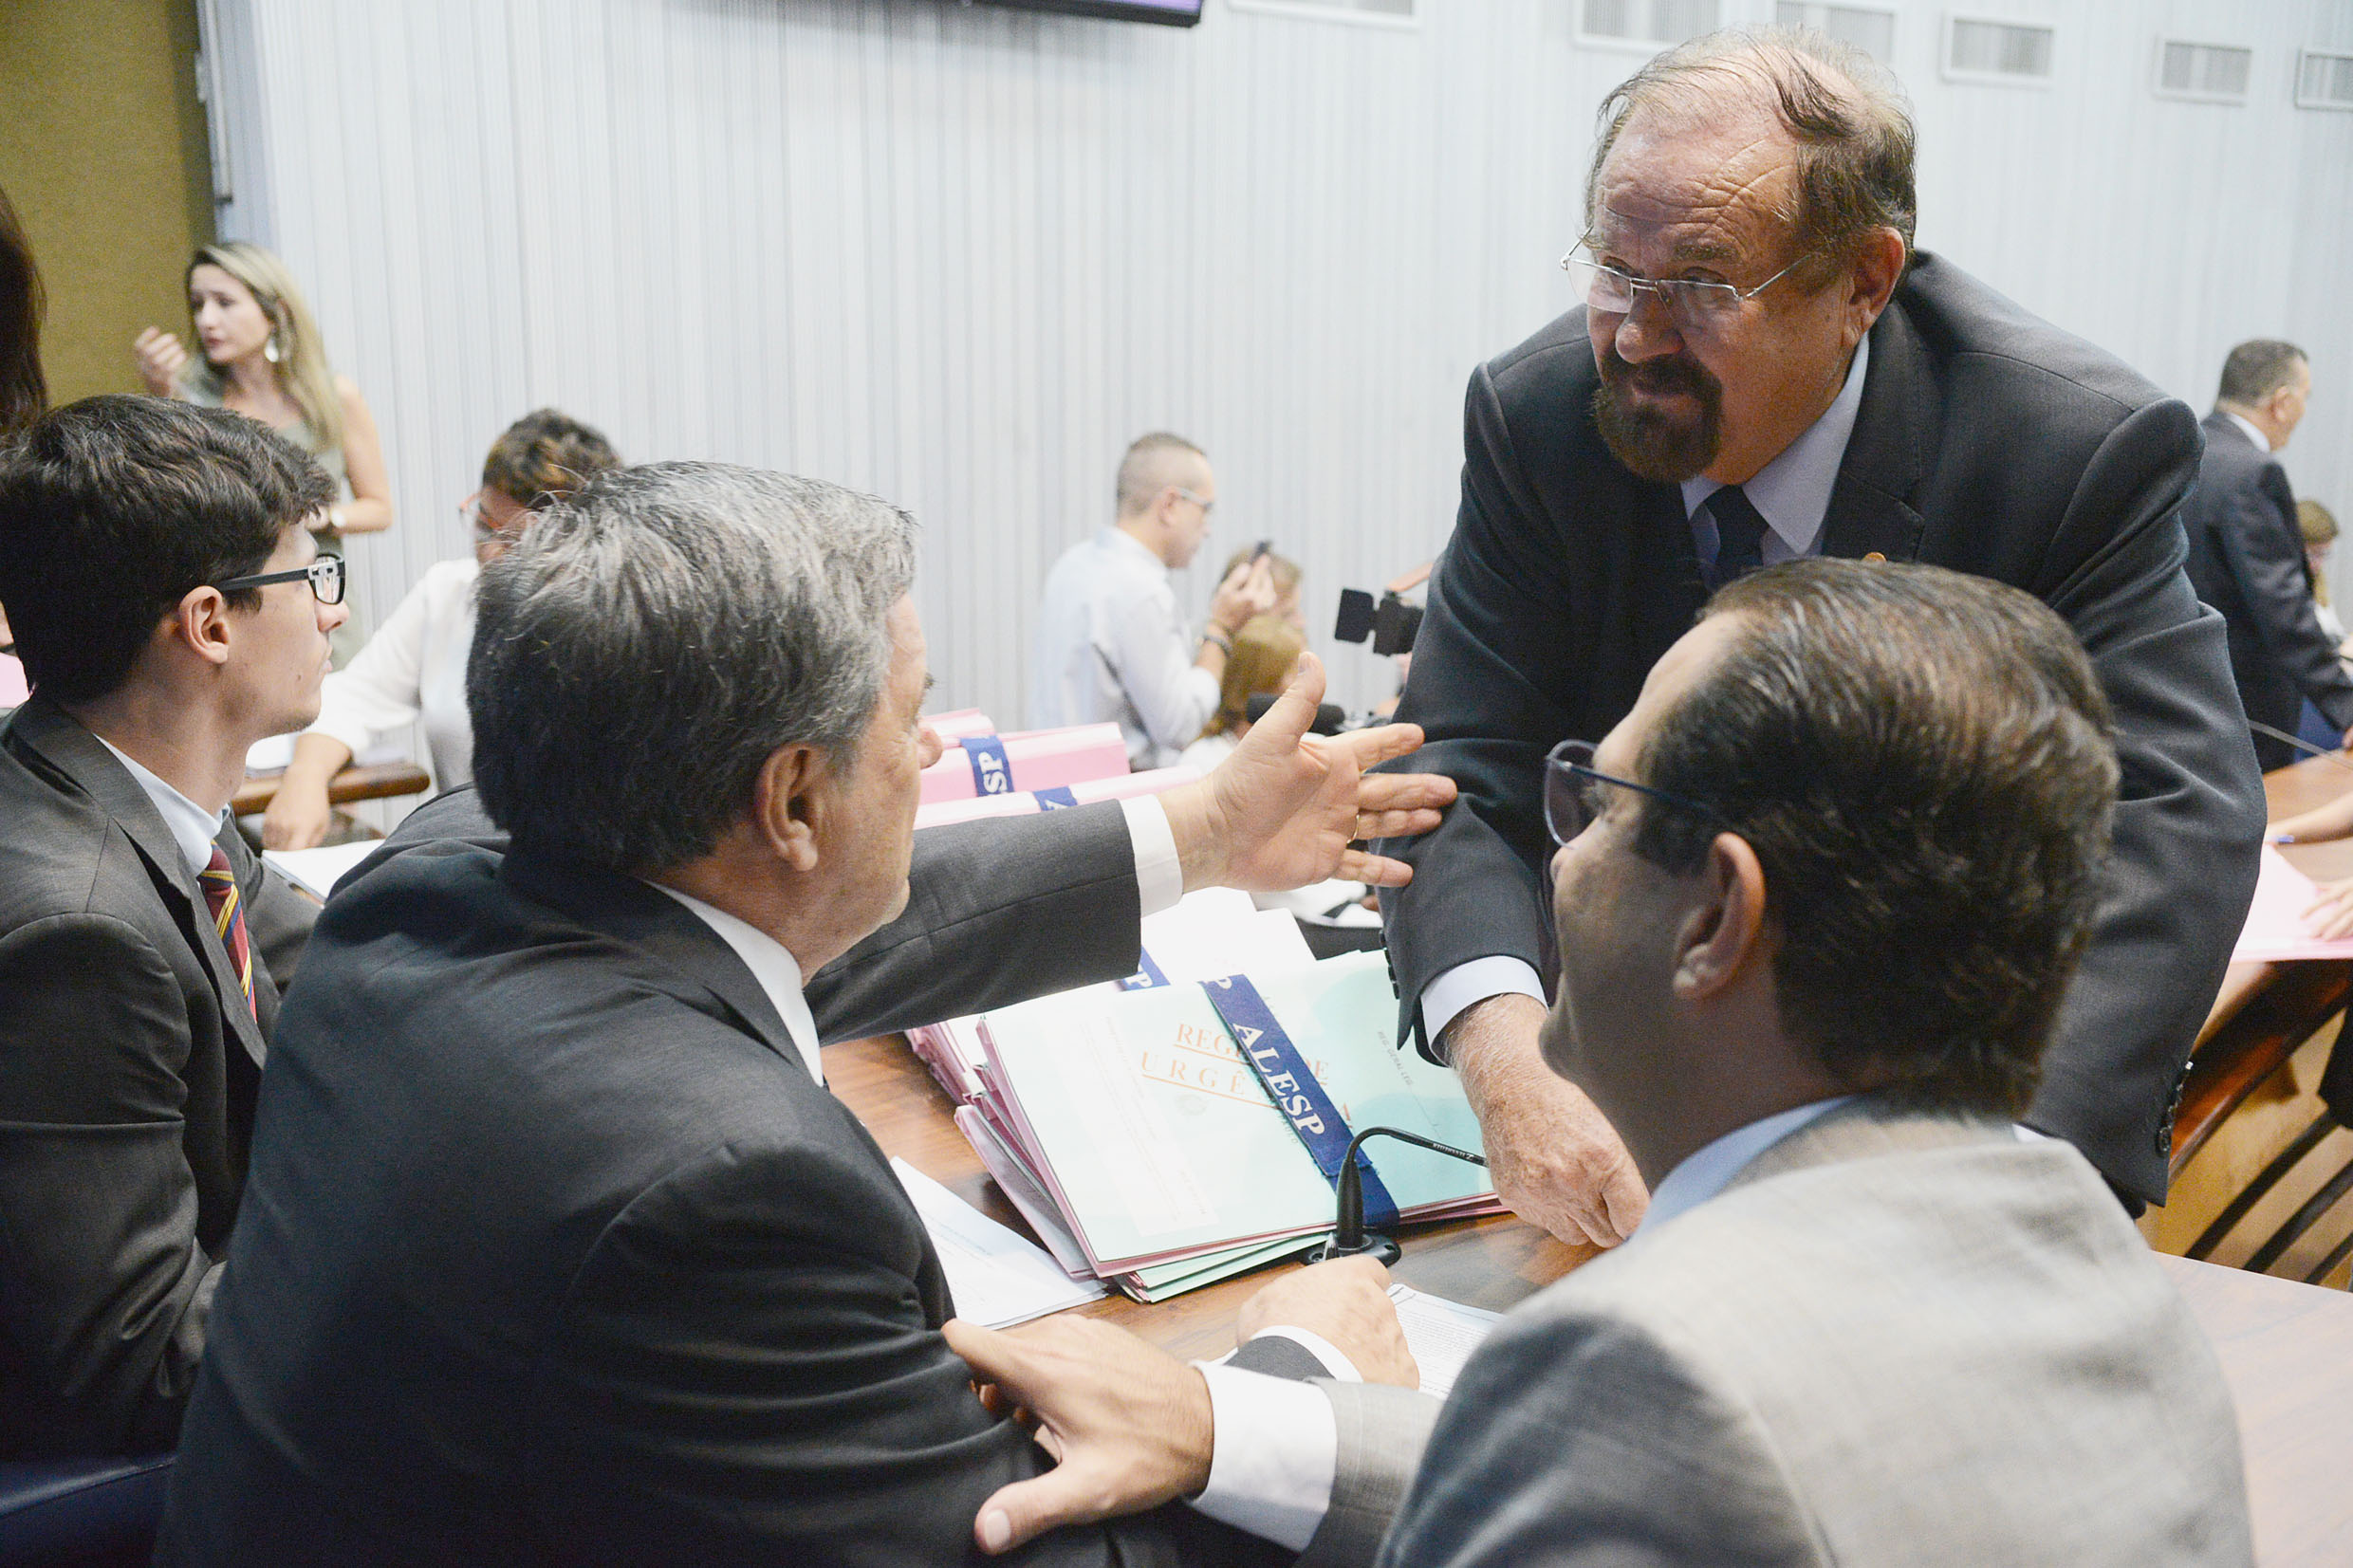 Parlamentares na comissão <a style='float:right' href='https://www3.al.sp.gov.br/repositorio/noticia/N-03-2019/fg231073.jpg' target=_blank><img src='/_img/material-file-download-white.png' width='14px' alt='Clique para baixar a imagem'></a>